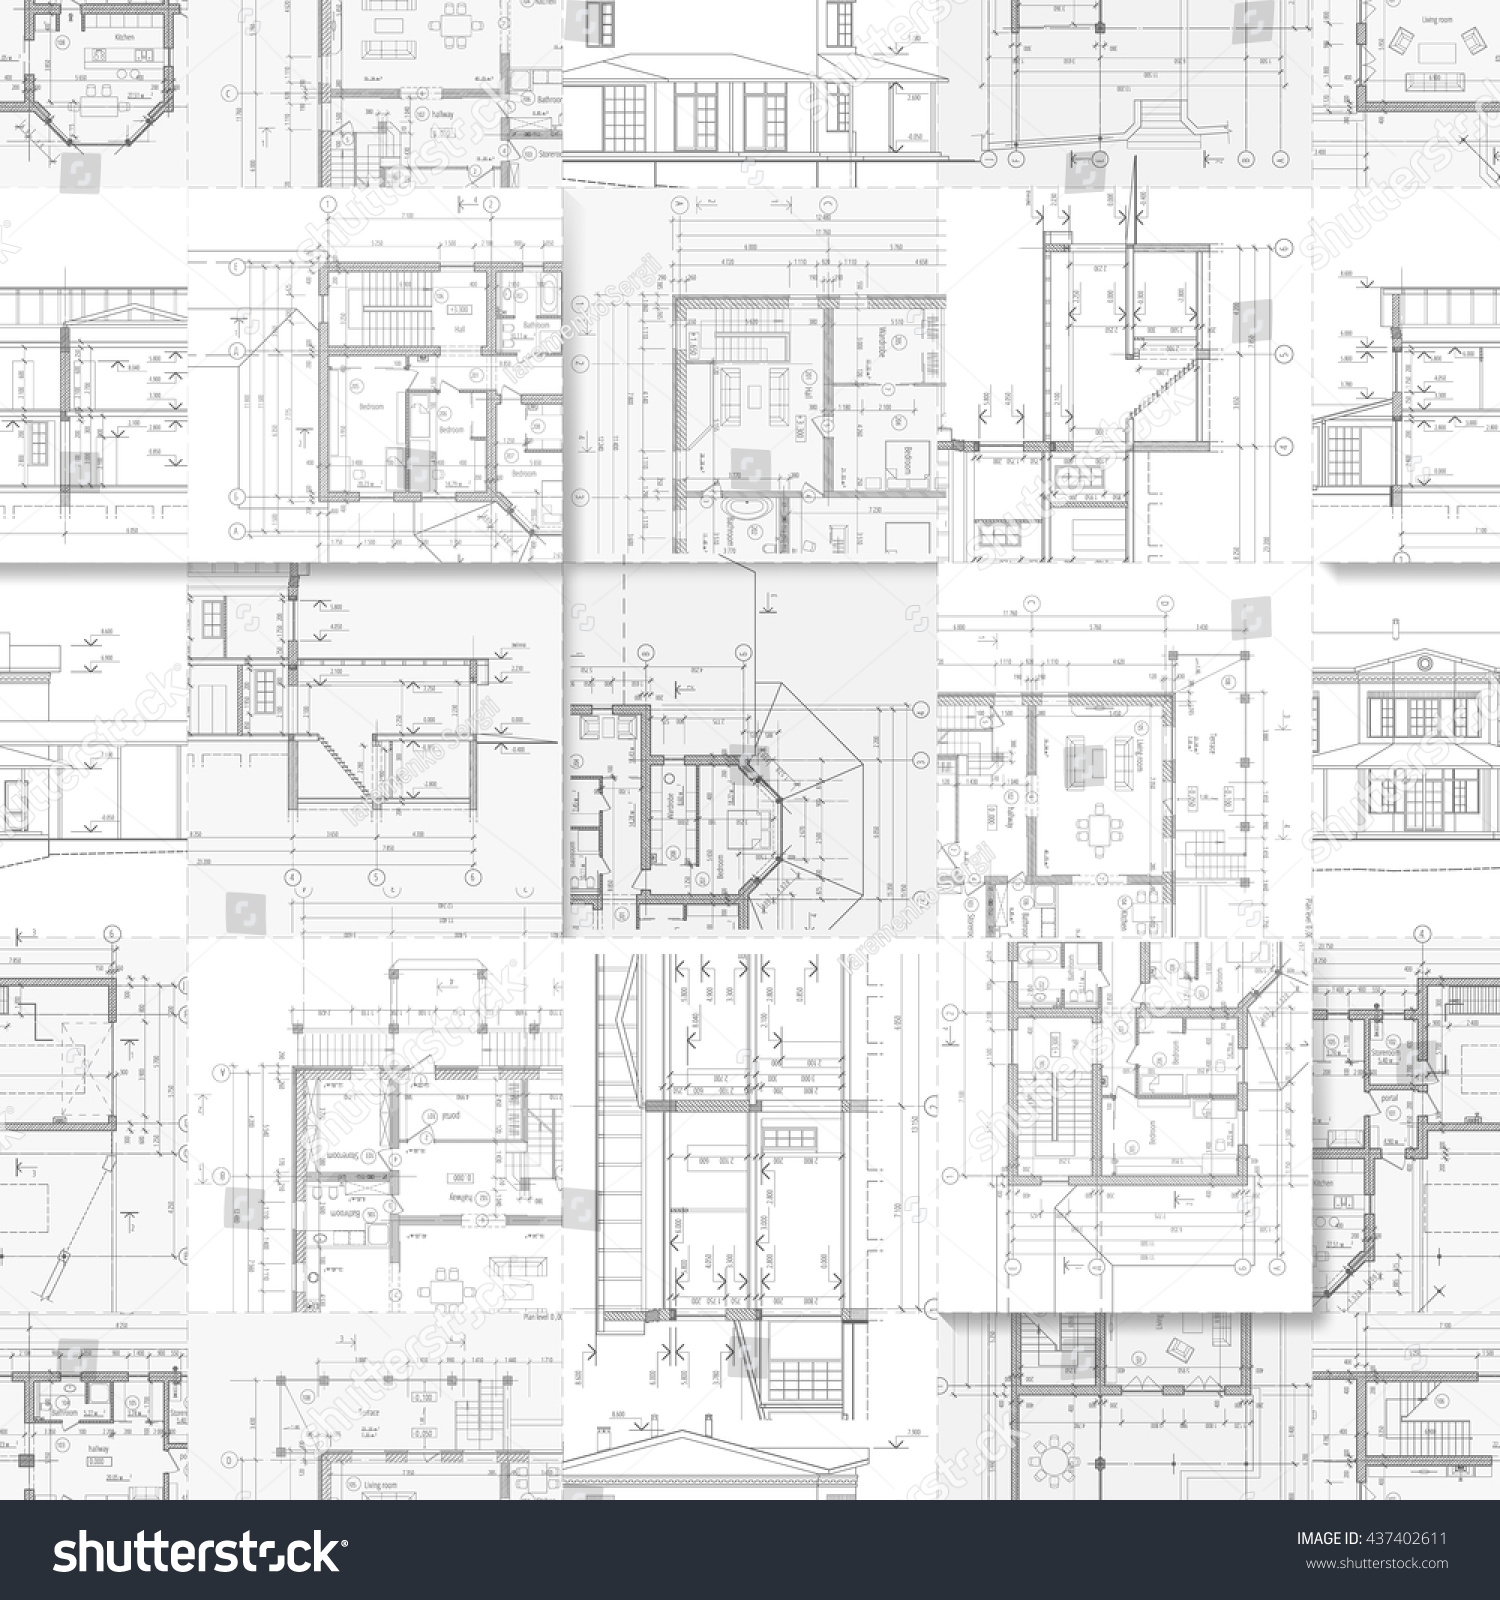 rchitectural Drawings Set Facades Building Plans Stock Vector ... - ^